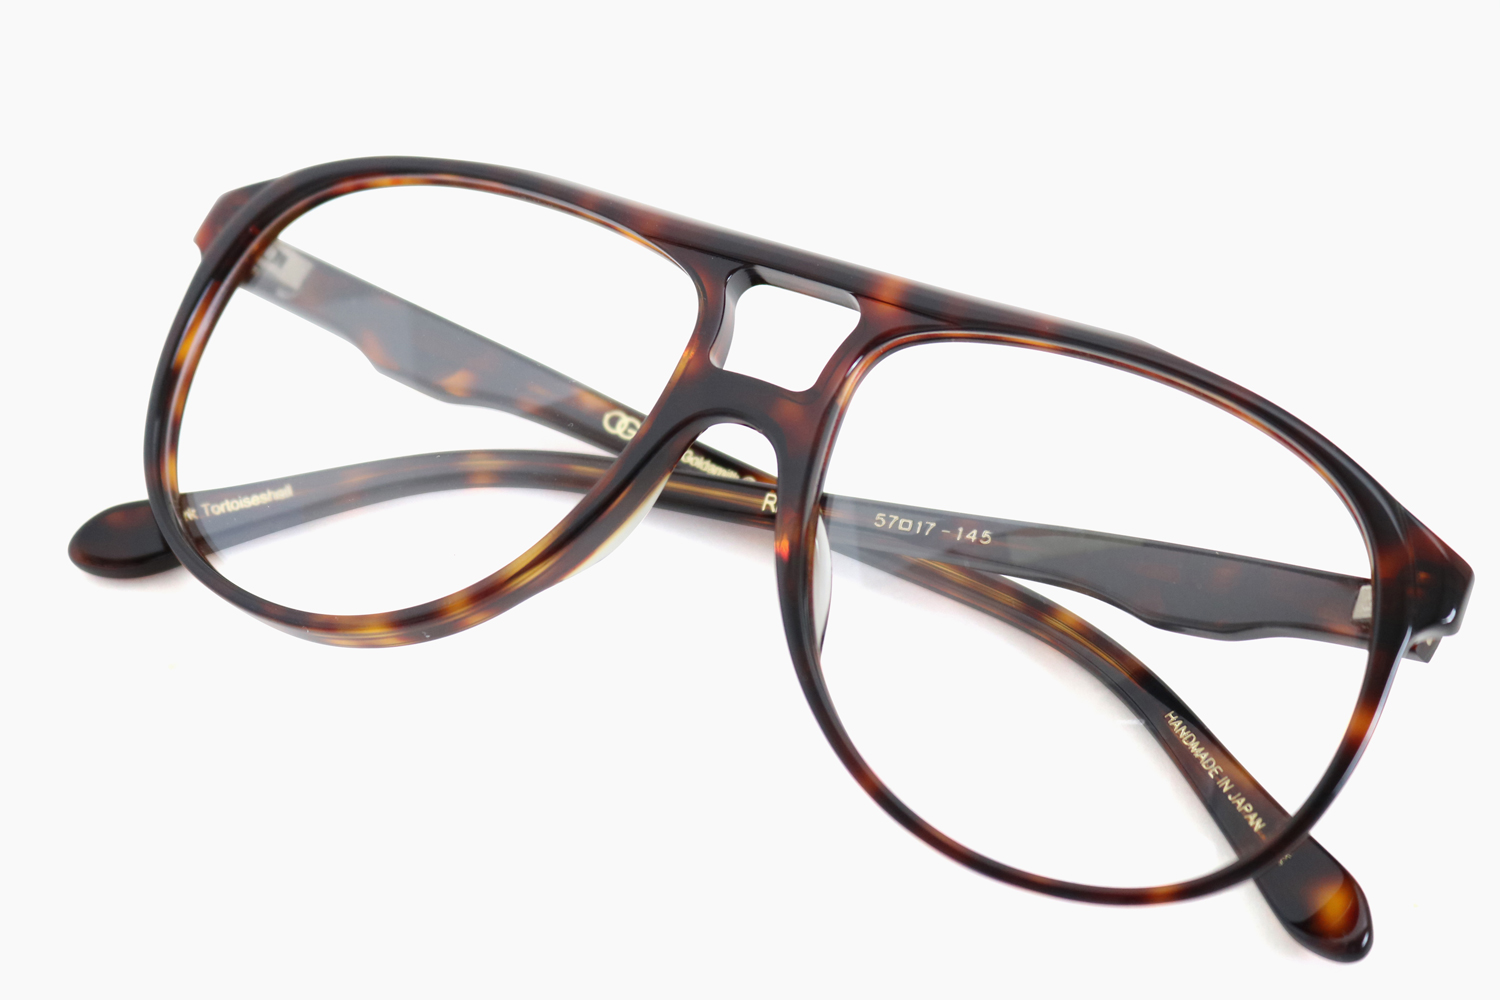 RAY - Dark Tortoiseshell|OLIVER GOLDSMITH